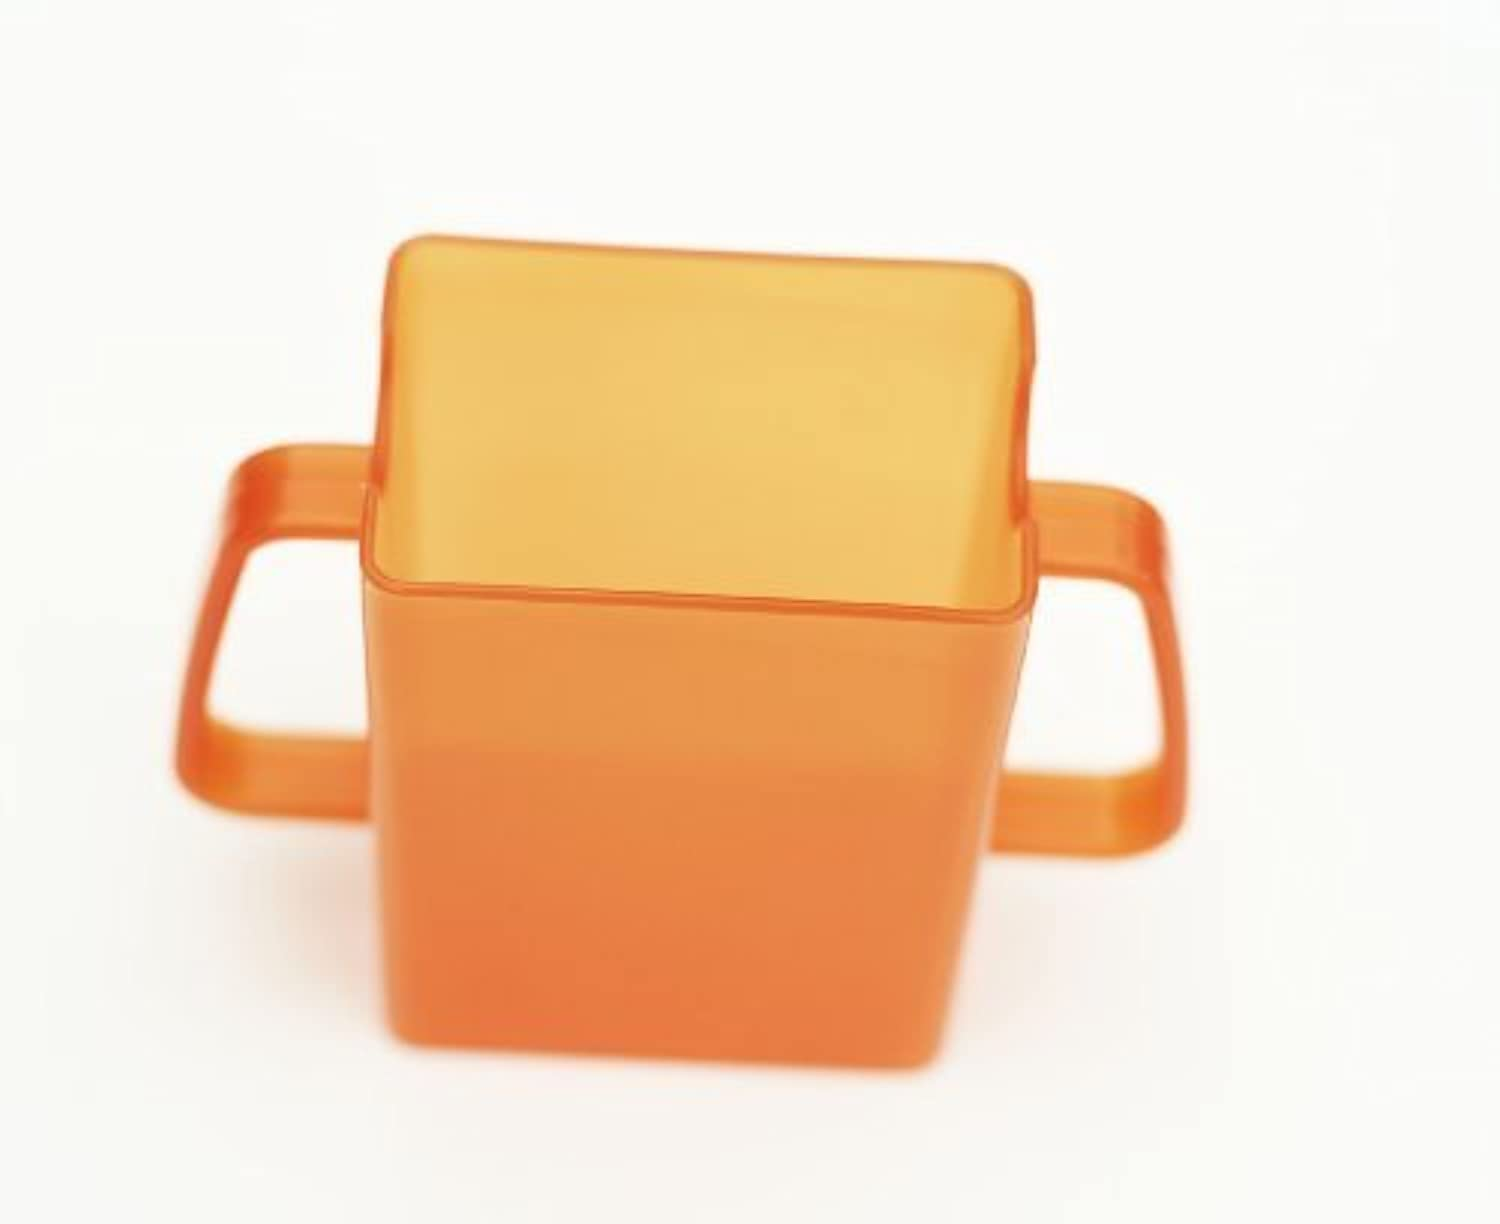 Mommys Helper Juice Box Buddies Holder for Juice Bags and Boxe, Orange by Mommy's Helper [並行輸入品]